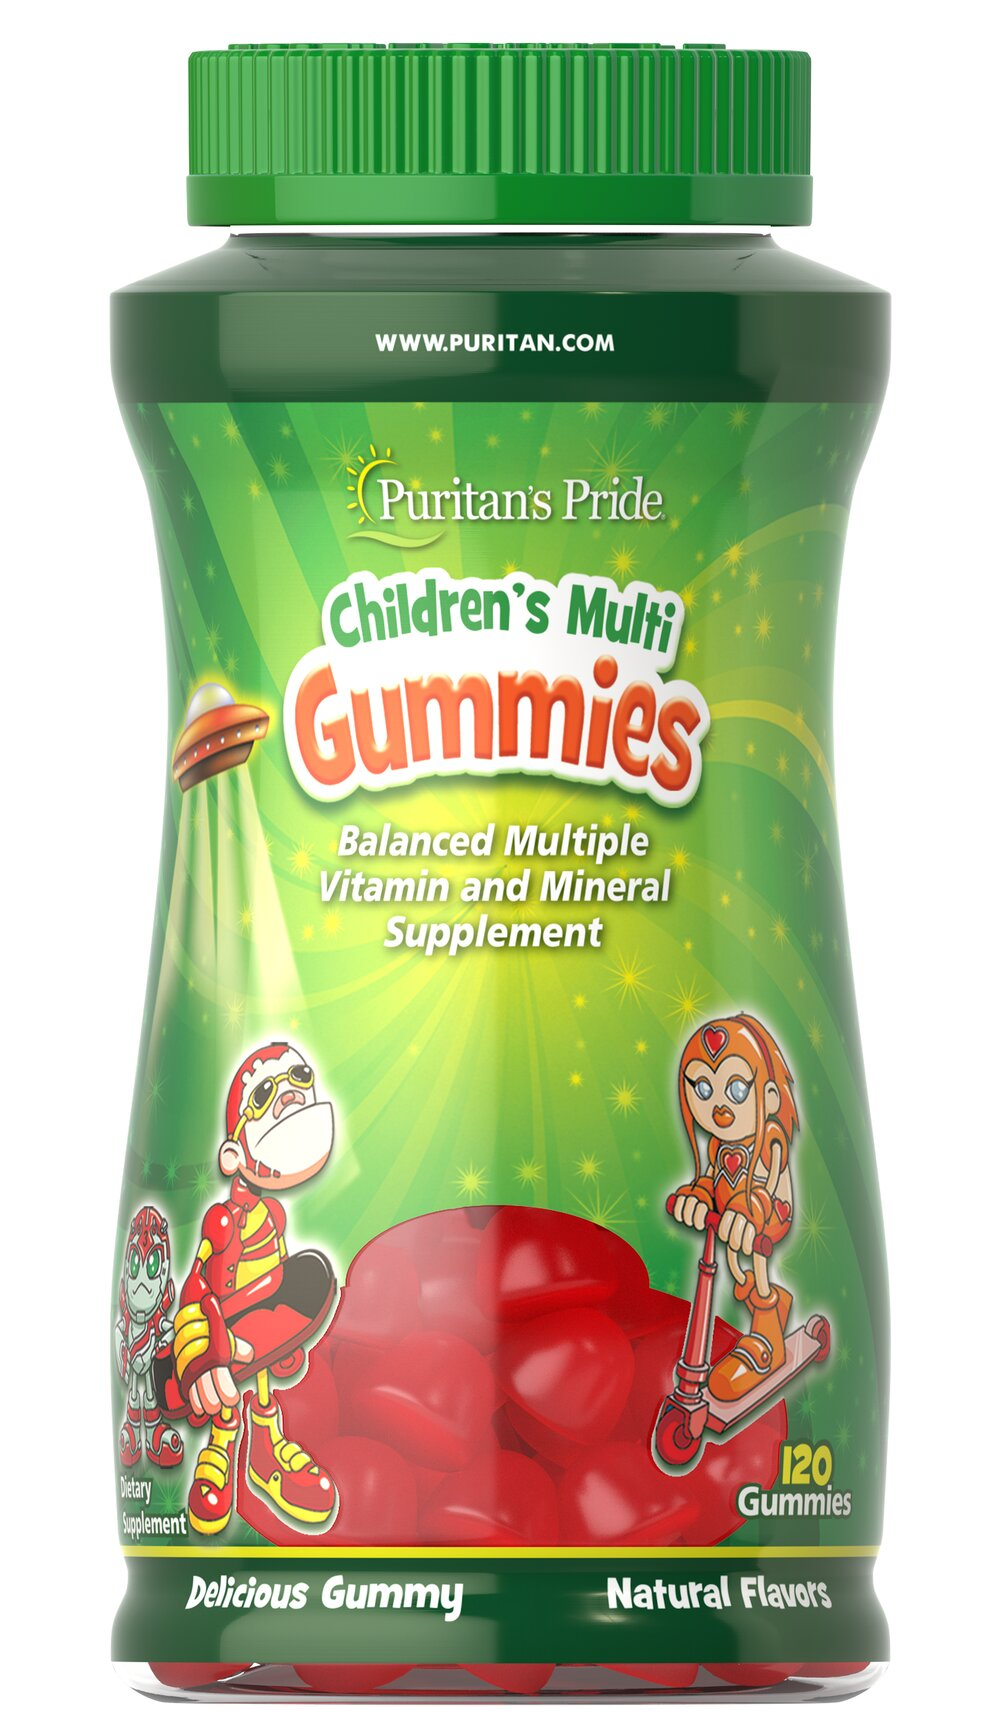 Children's Multivitamins & Mineral Gummies <p>These multivitamins gummies are packed with essential vitamins and minerals necessary for your child's healthy growth and development.** Included are Vitamin D for the bones, and Vitamins C and E for the immune system.**</p> 120 Gummies